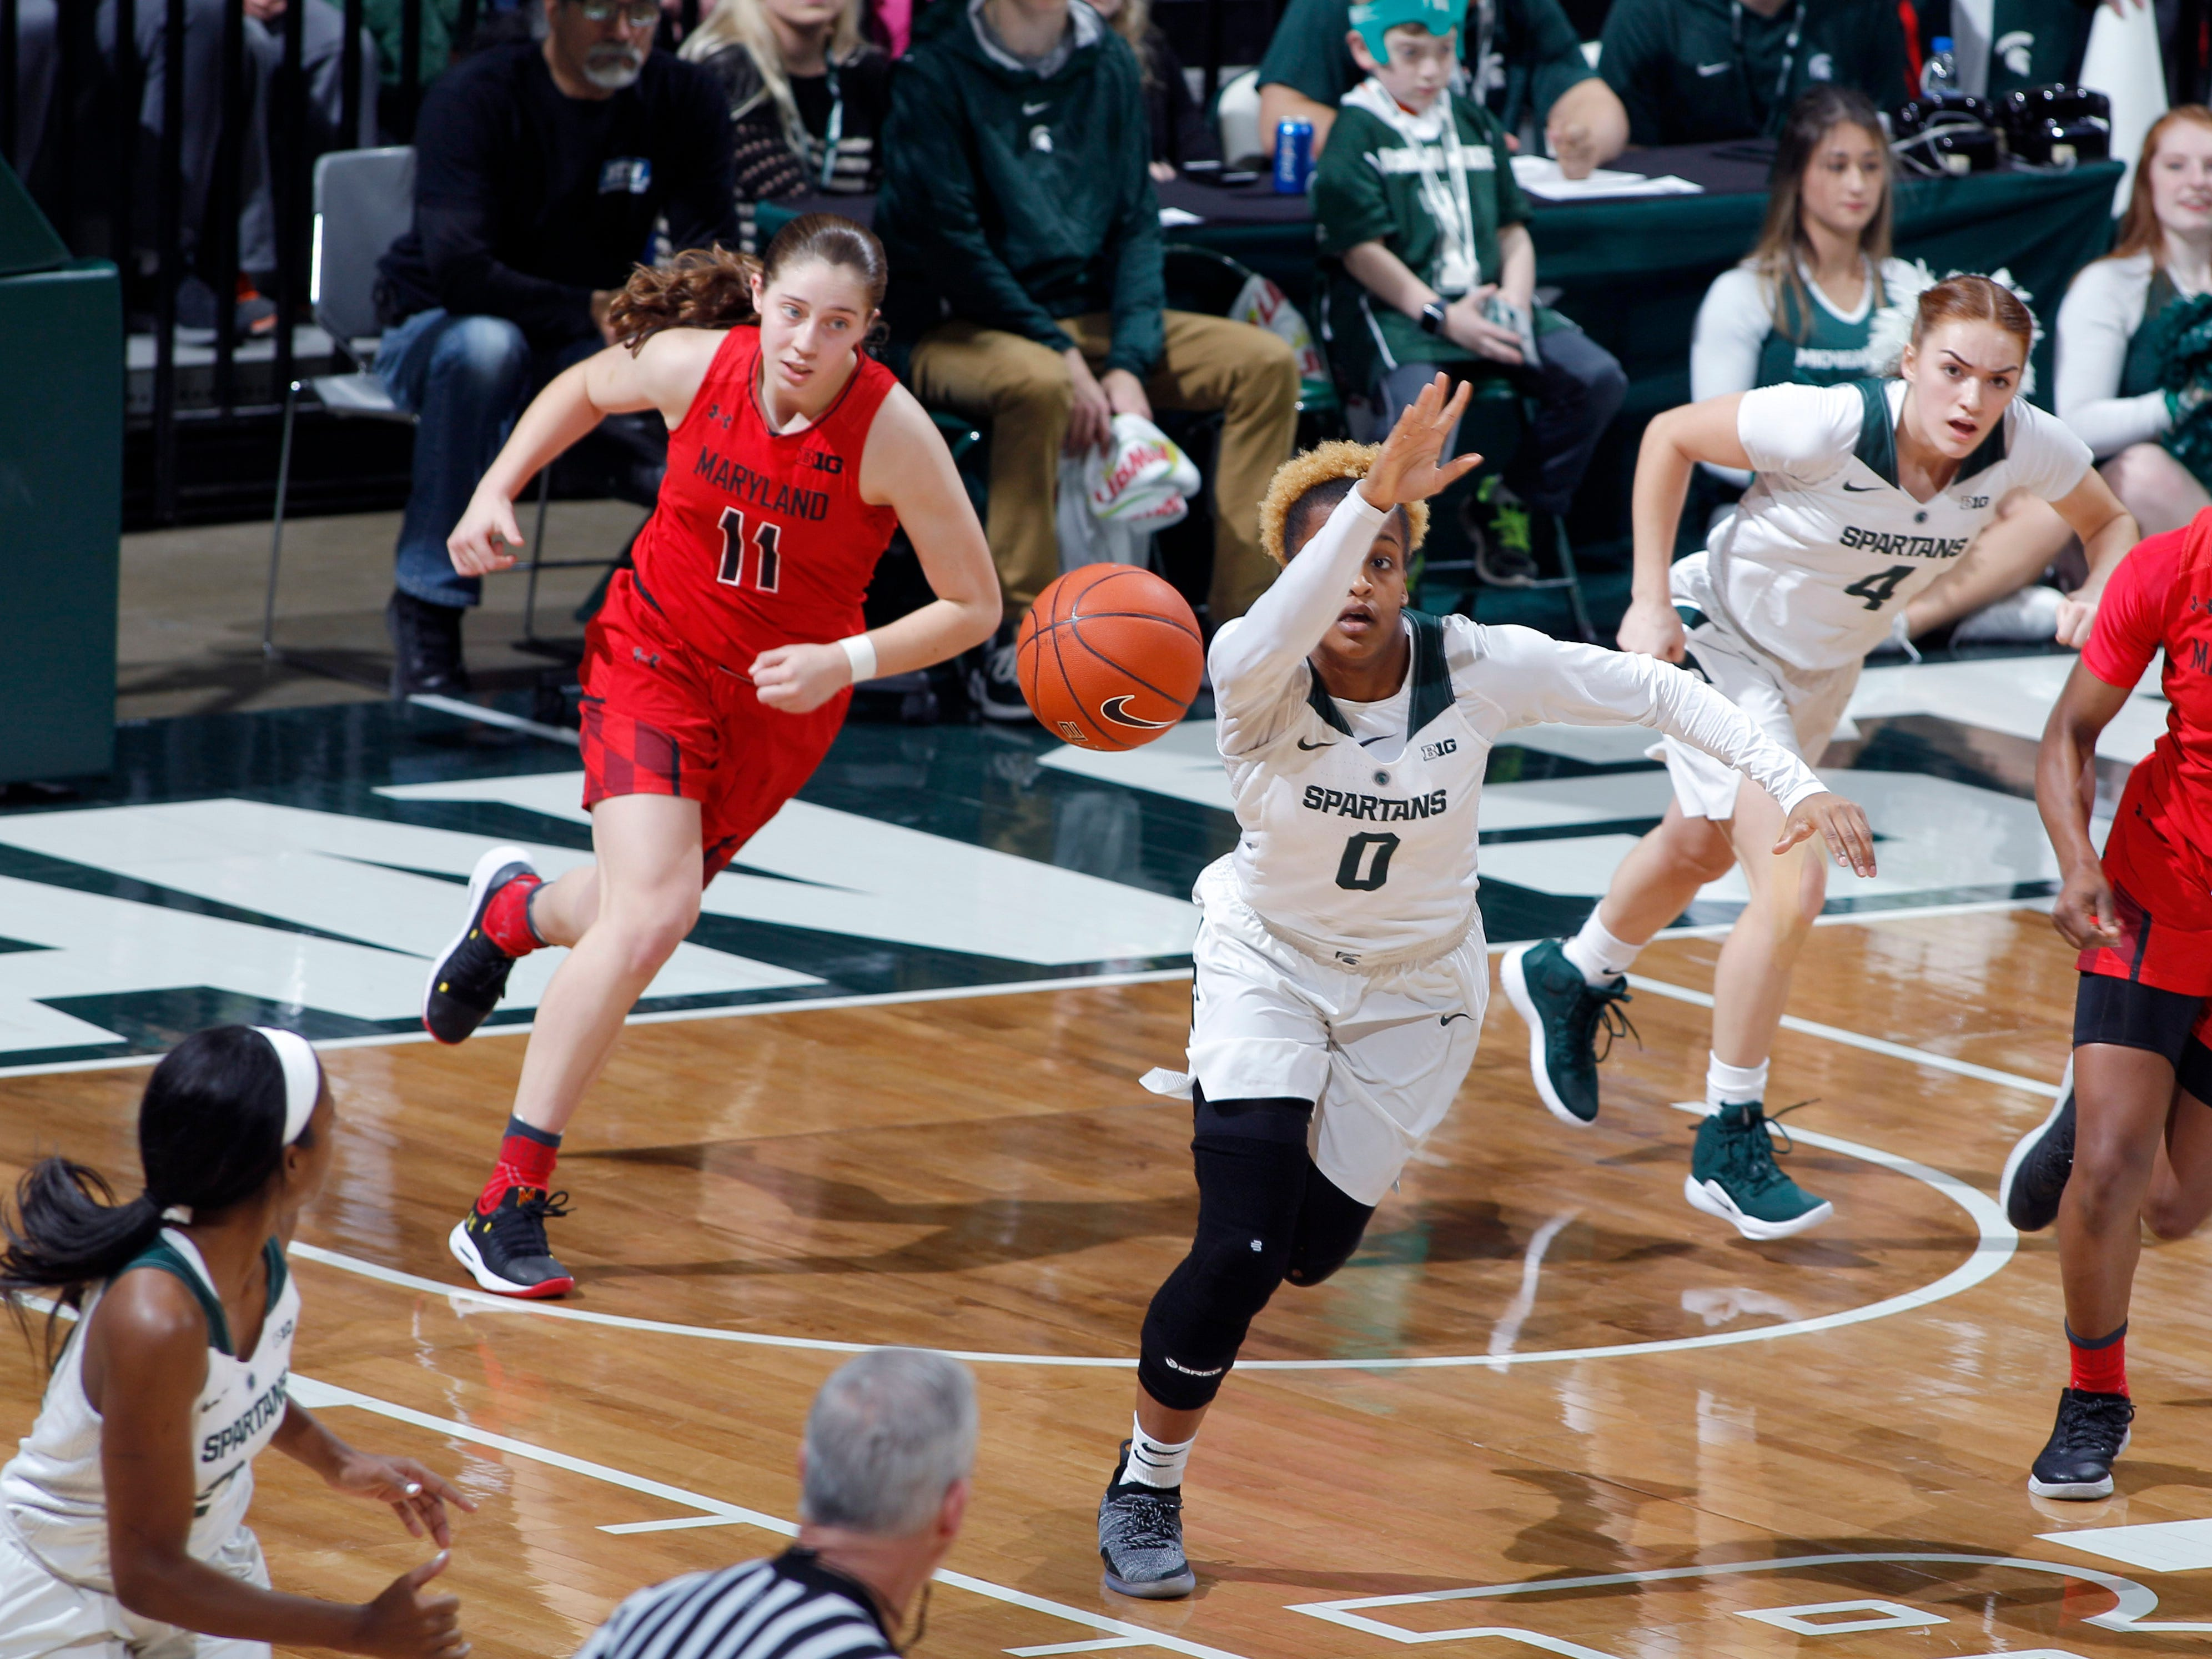 Michigan State's Shay Colley (0) passes to Nia Clouden, left, as they begin a fast break against Maryland, Thursday, Jan. 17, 2019, in East Lansing, Mich.